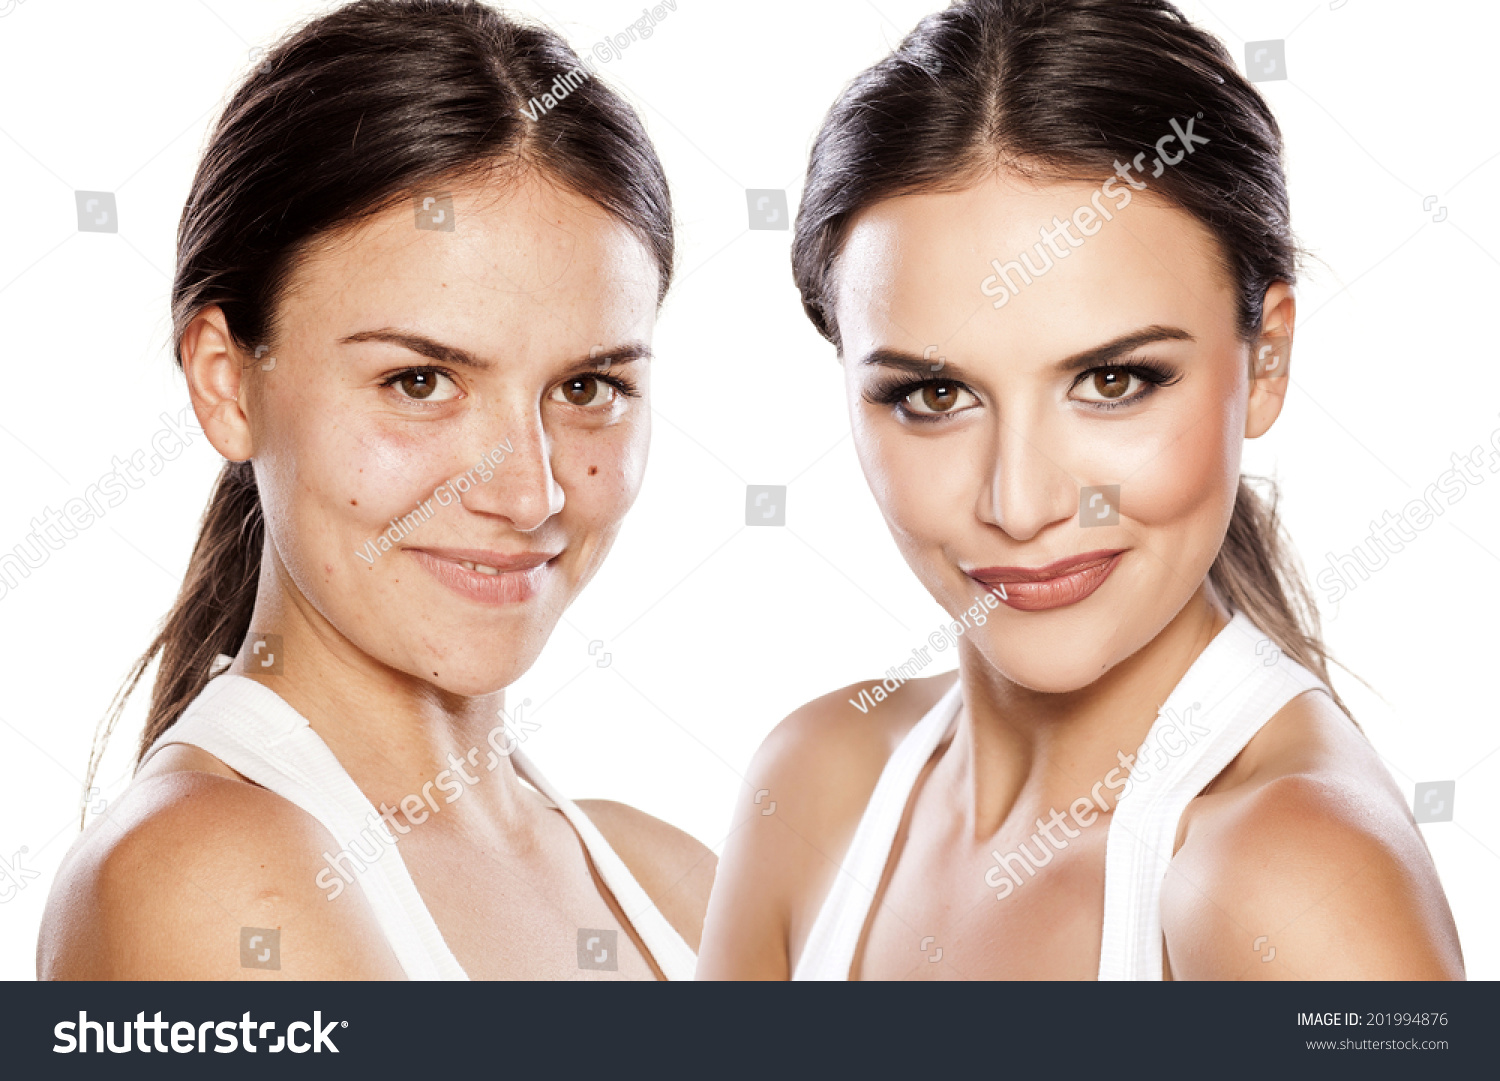 stock-photo-comparison-portrait-of-a-girl-with-and-without-makeup-201994876.jpg